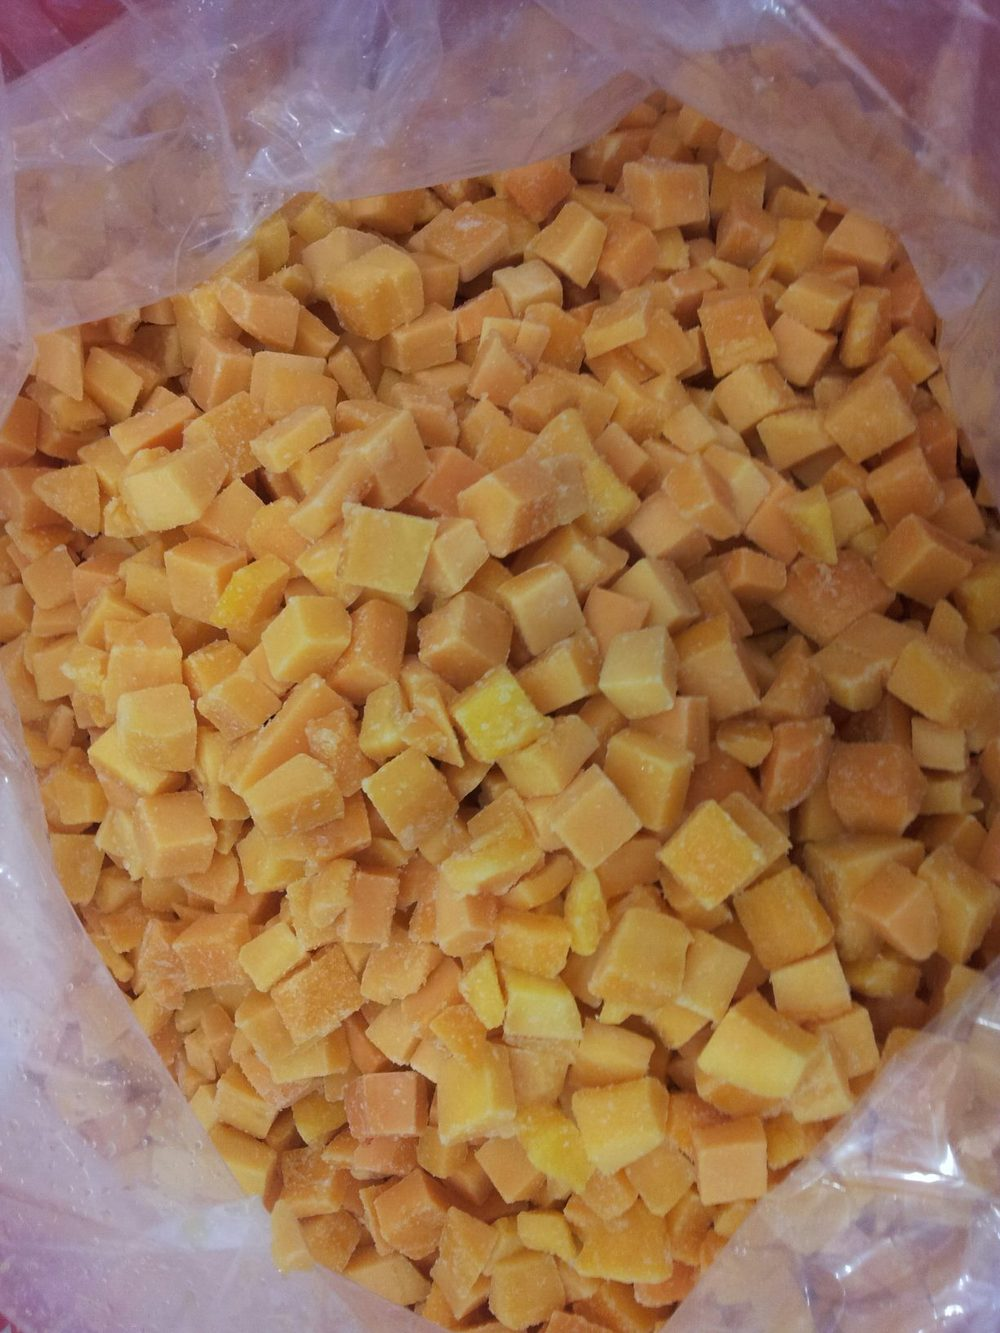 FROZEN MANGO DICE | HIGH QUALITY - COMPETITIVE PRICE